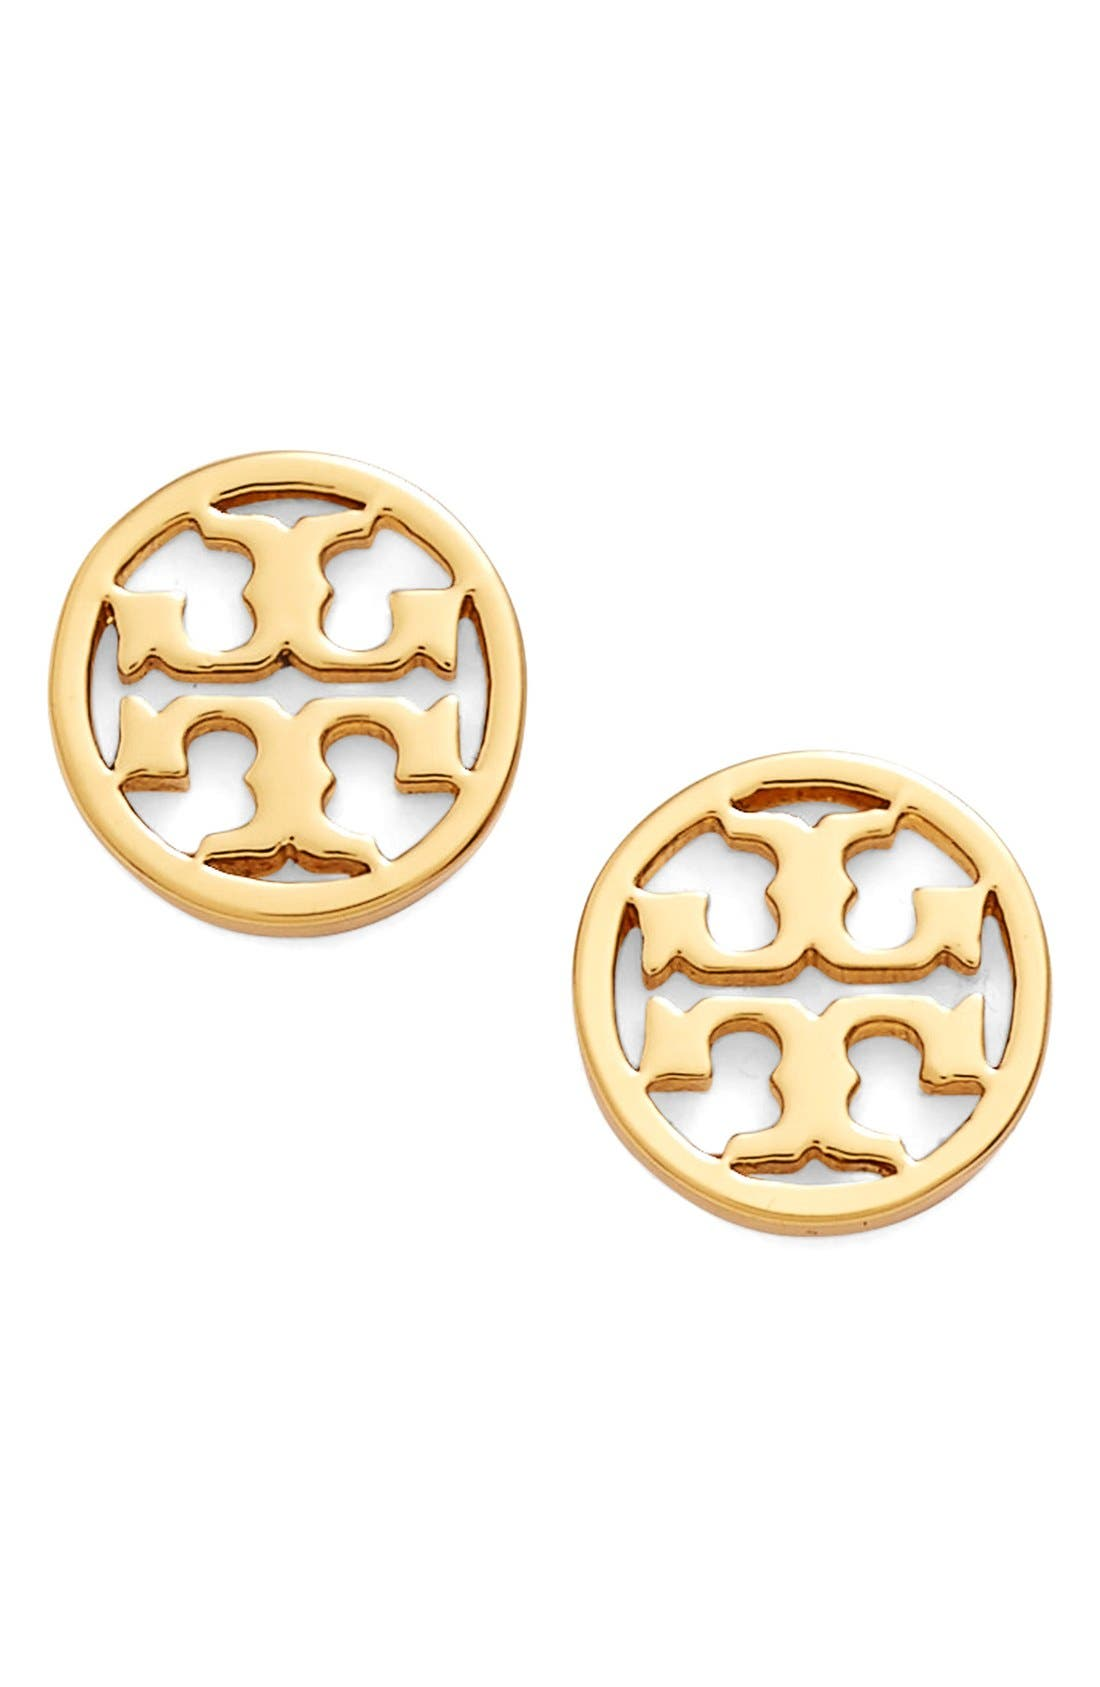 Tory Burch Circle Logo Stud Earrings